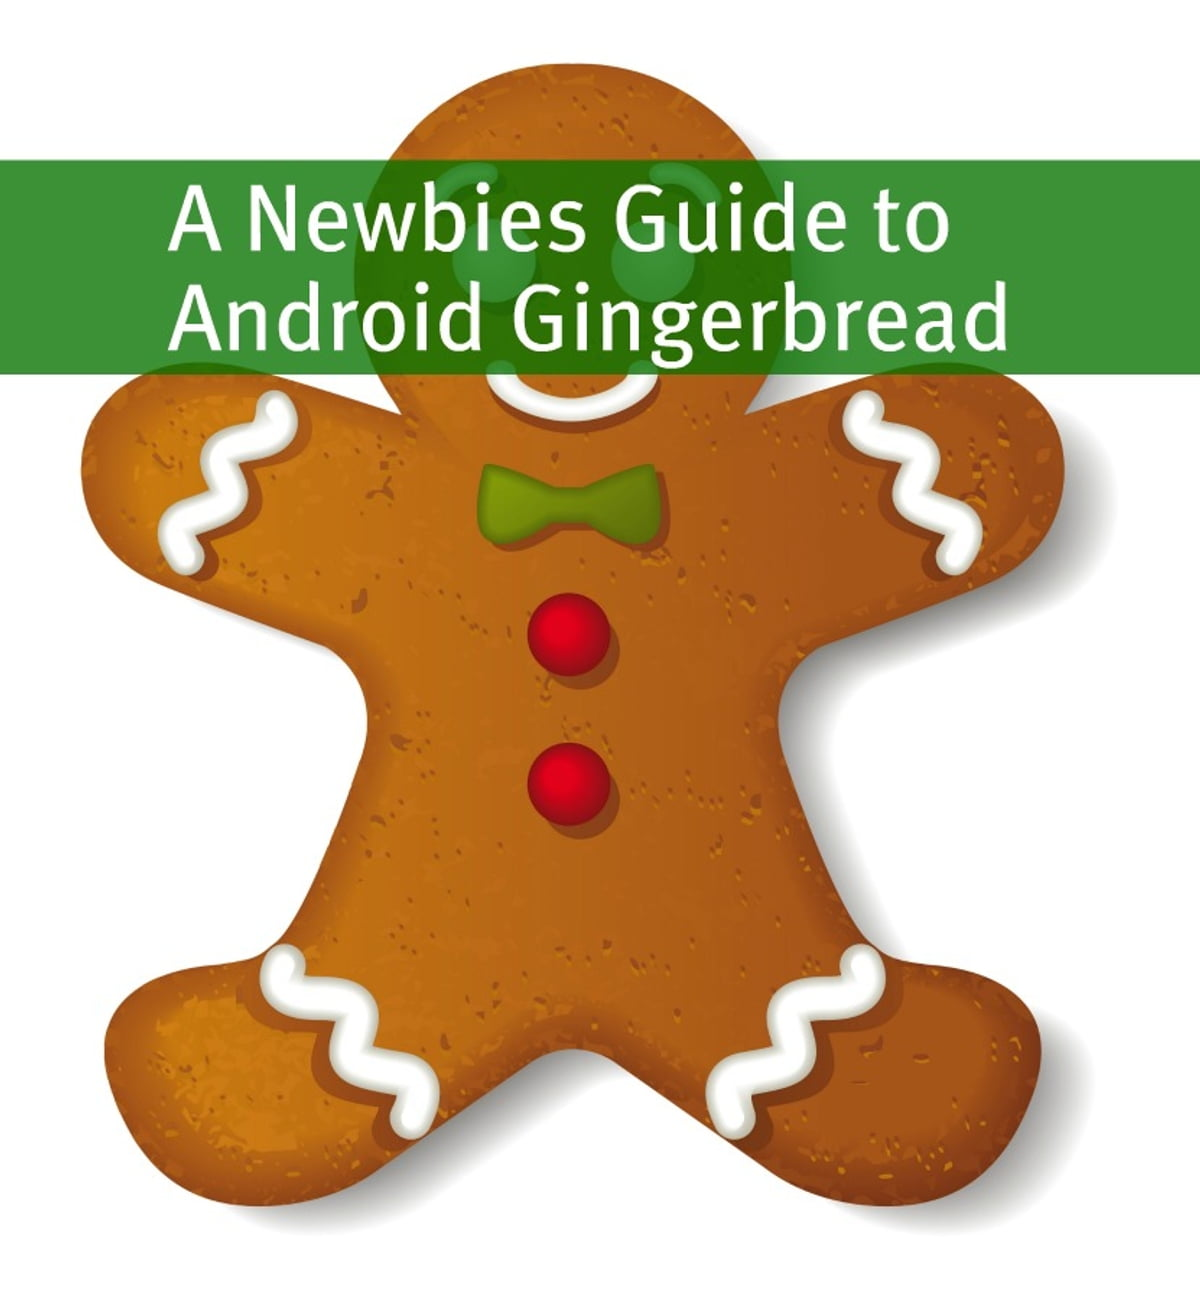 A Newbies Guide to Android Gingerbread eBook by Minute Help Guides -  1230000012084 | Rakuten Kobo